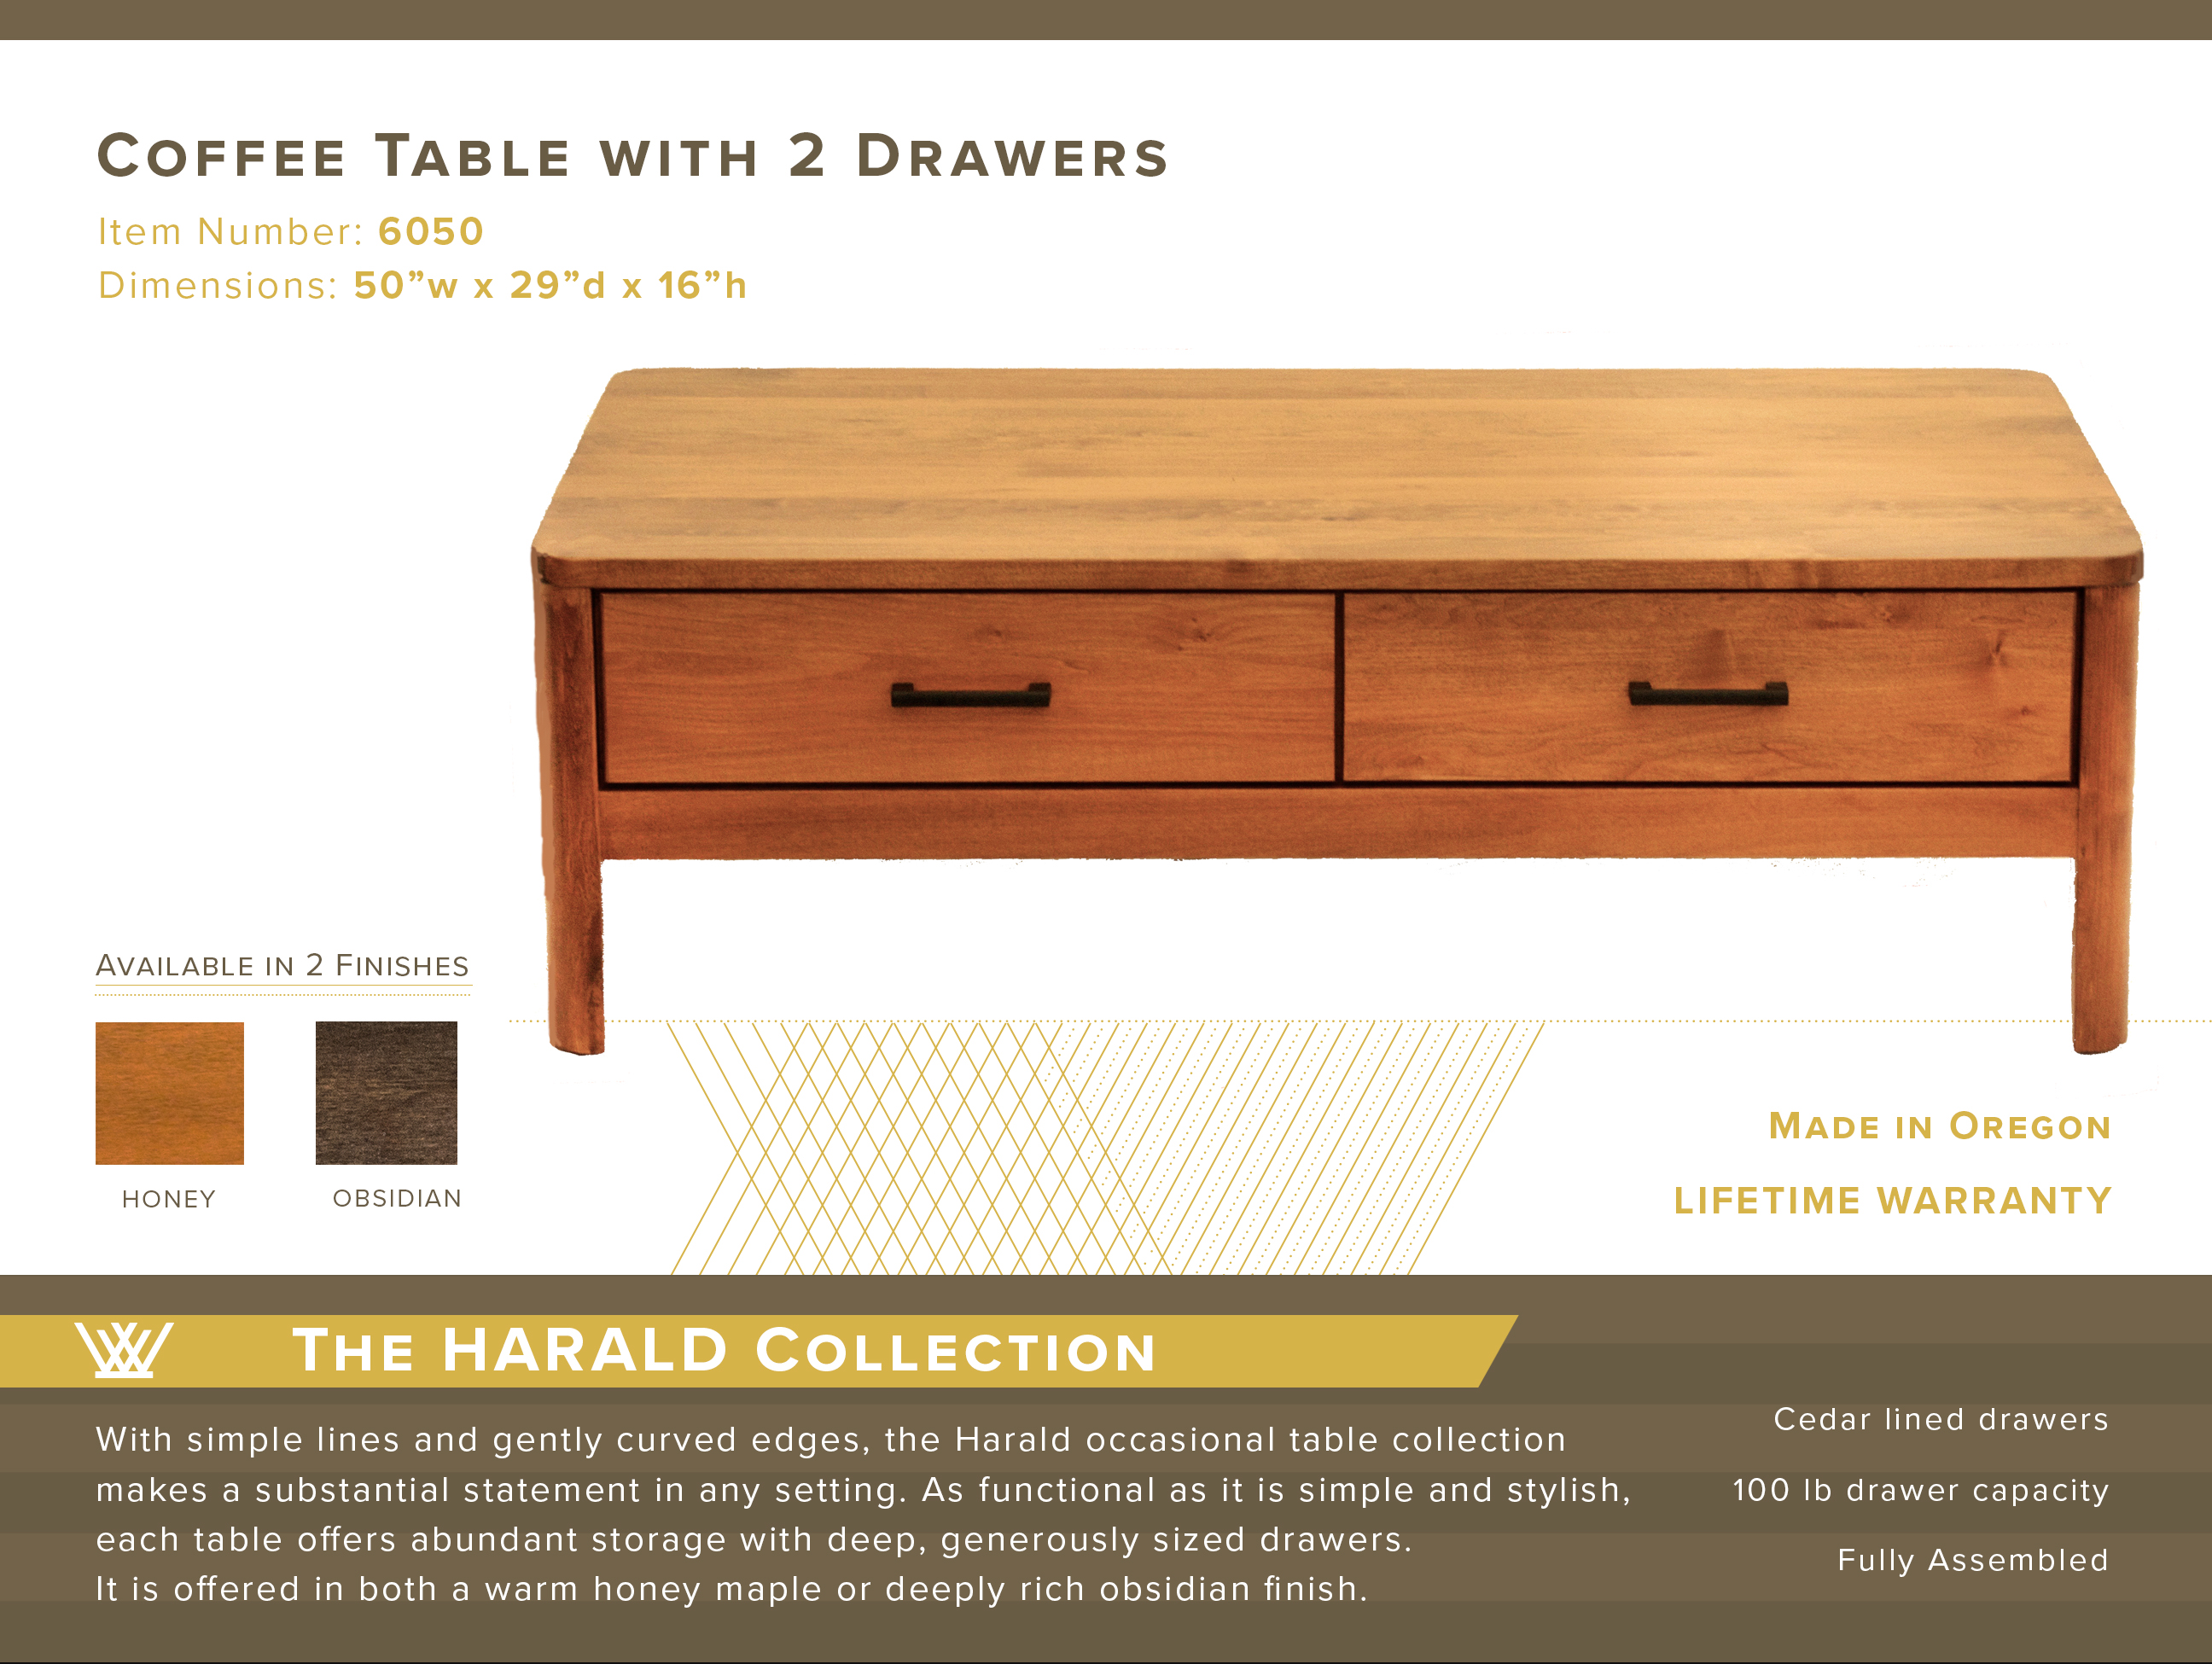 Harald Coffee Table #6050